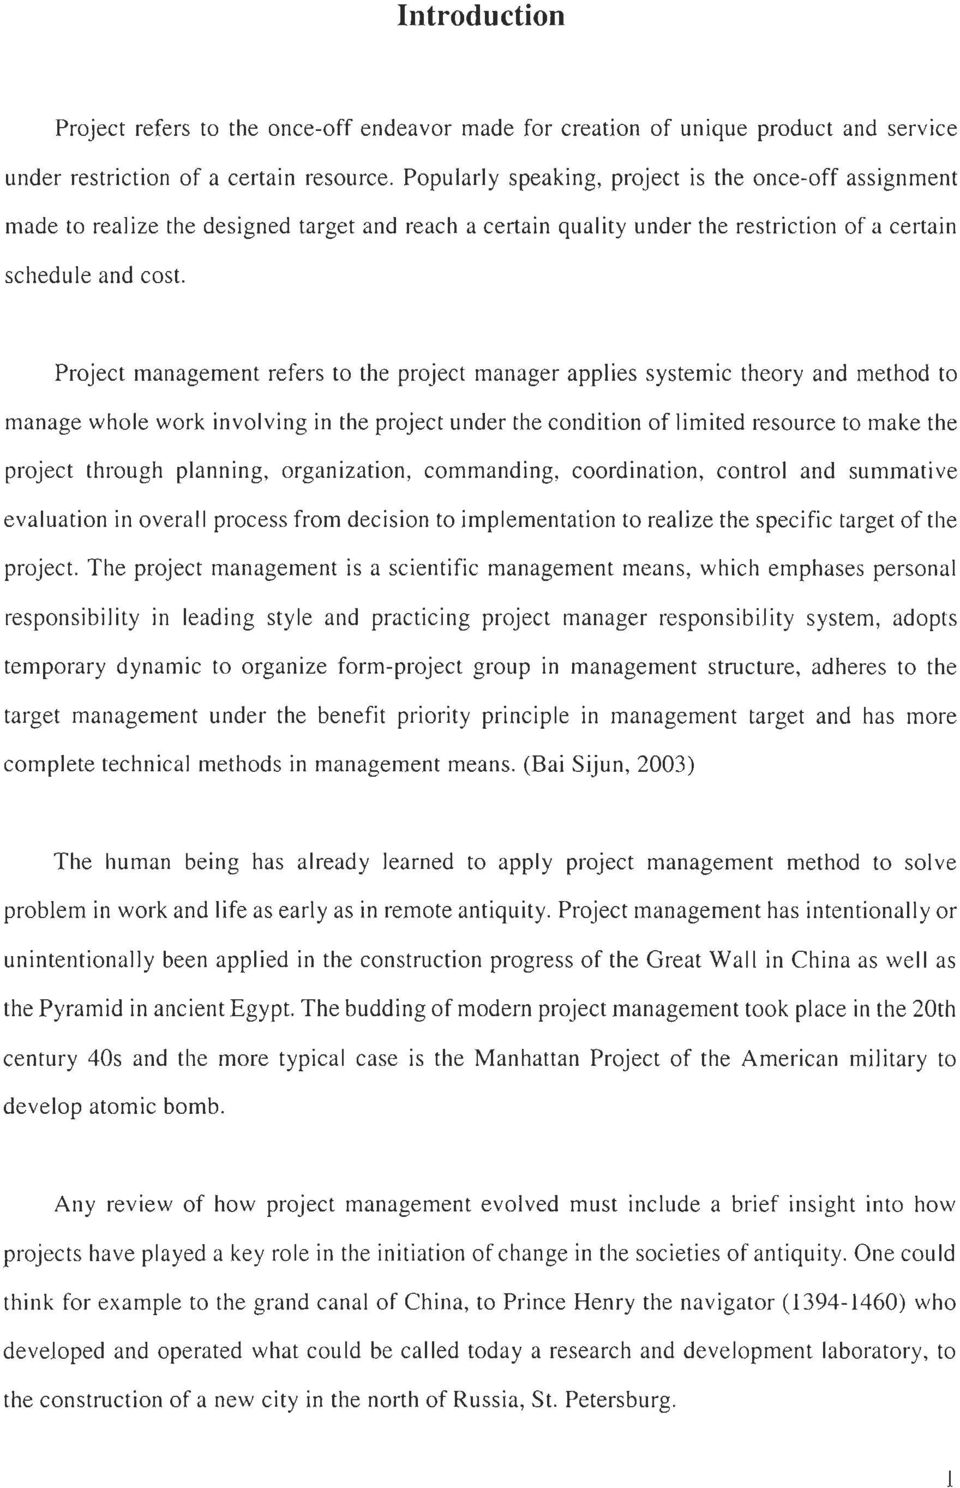 Project management refers to the project manager applies systemic theory and method to manage whole work in volving in the project under the condition of limited resource to make the project through